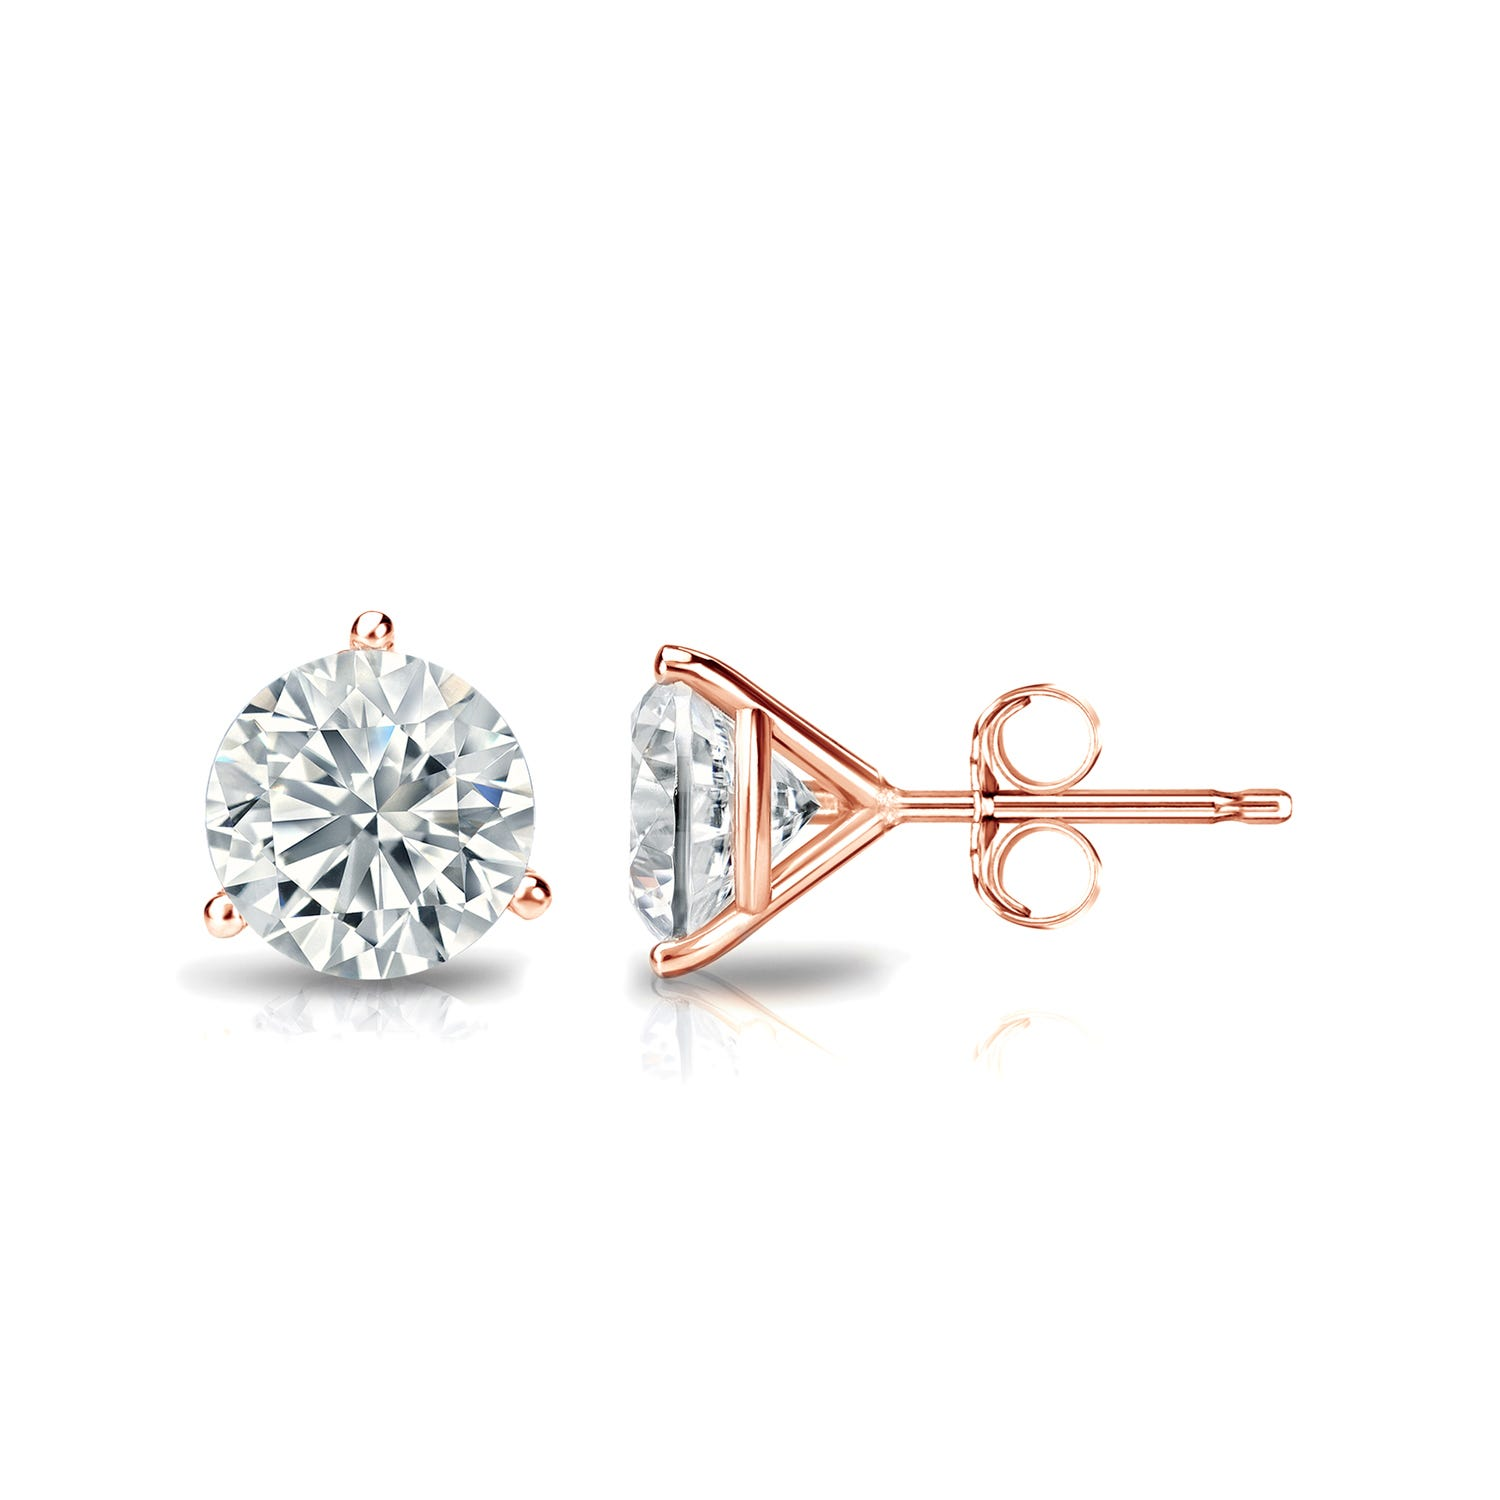 1 CTTW Round Diamond Solitaire Stud Earrings IJ SI2 in 14K Rose Gold IGI Certified 3-Prong Setting